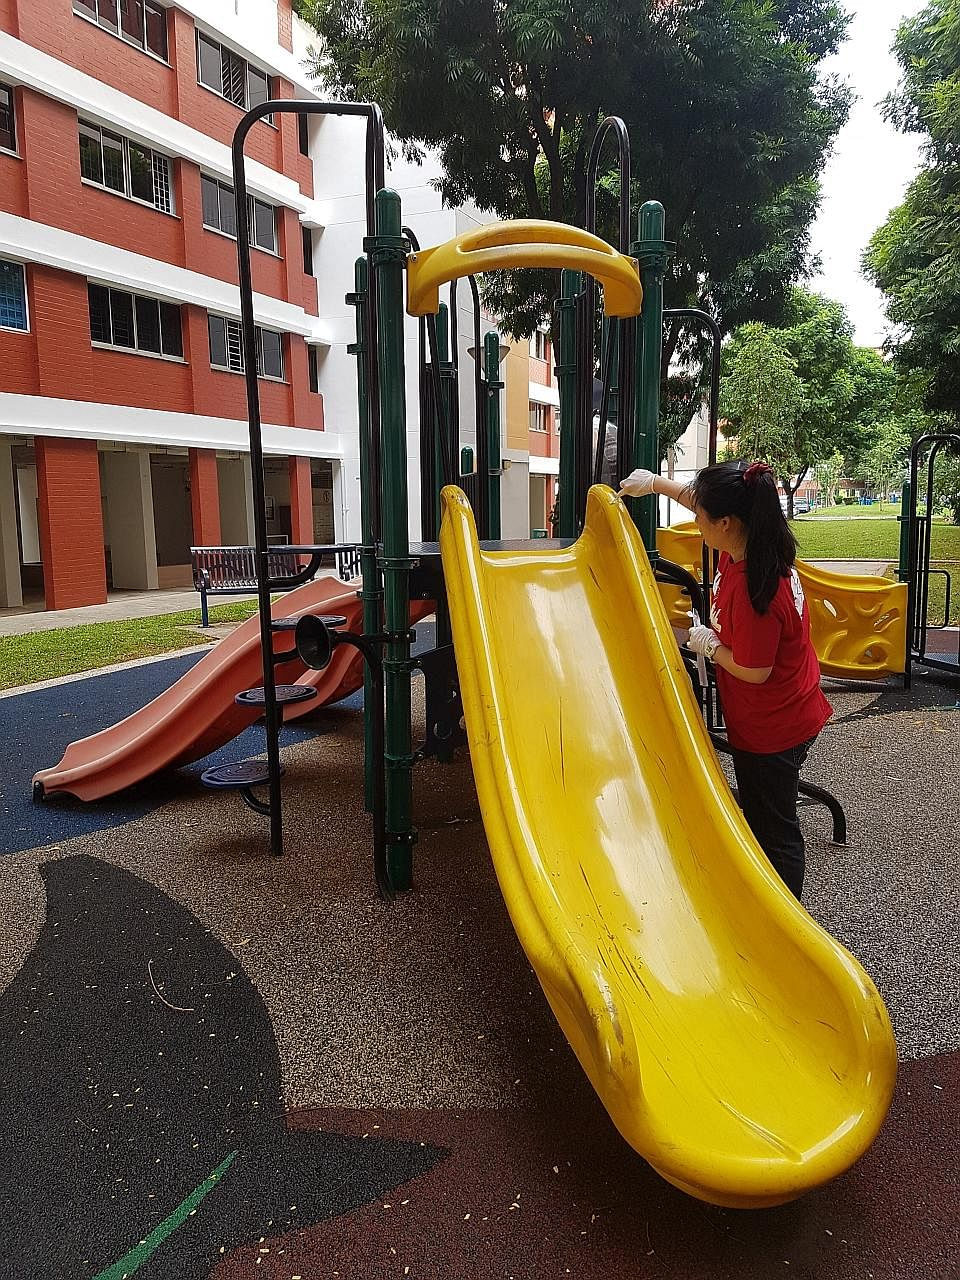 A volunteer from A*Star swabbing the surfaces of a playground in Singapore. The sample is among the 1,000 that will be sent to New York to be analysed for genetic information. The study will give researchers a glimpse of the bacteria, viruses and gen